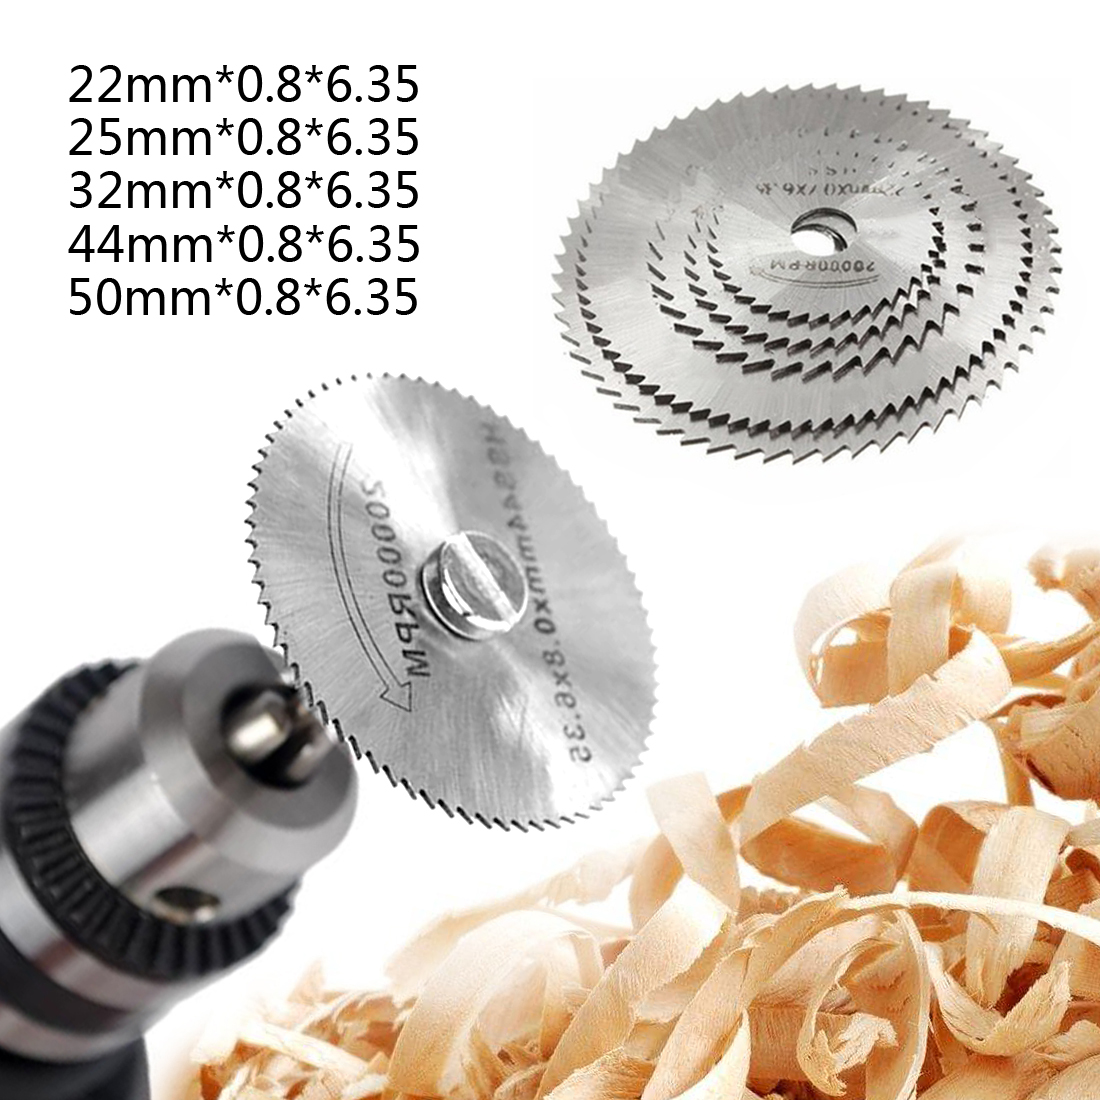 22-50mm Mini HSS Circular Saw Blade Jig Saw Rotary Tool For Dremel Metal Cutter Power Tool Set Wood Cutting Discs Drill Mandrel стоимость